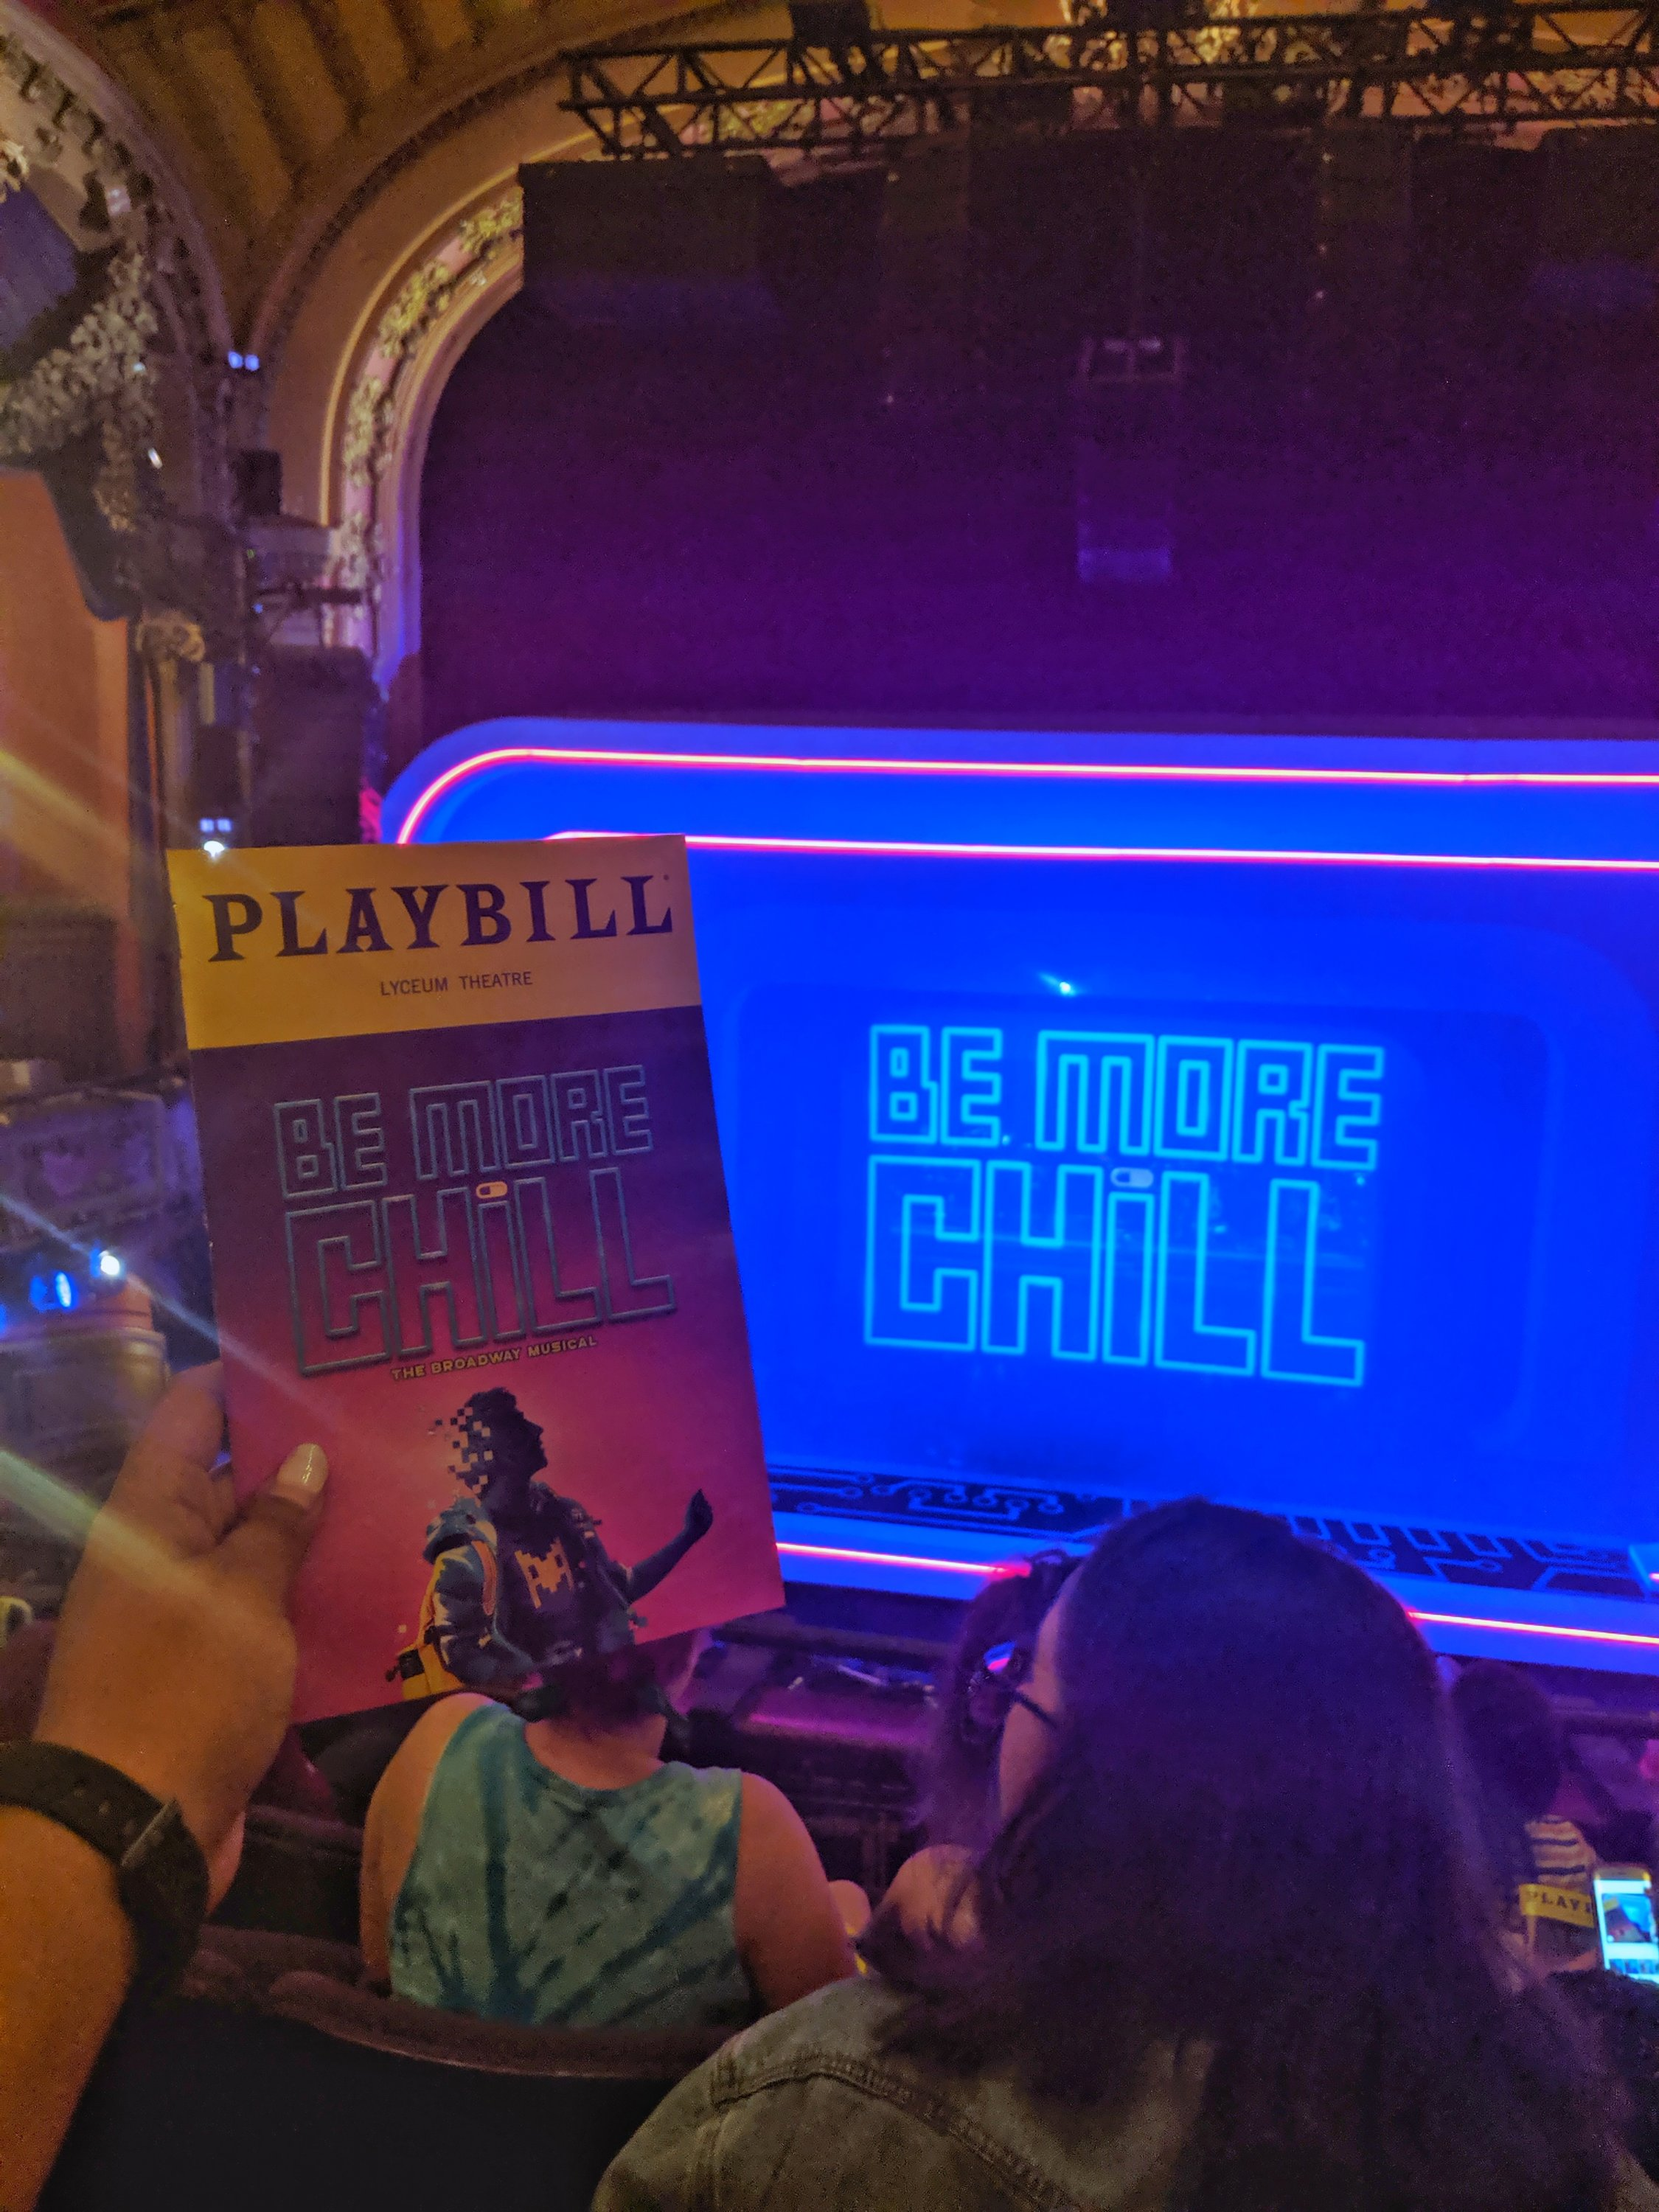 be more chill musical NYC trip